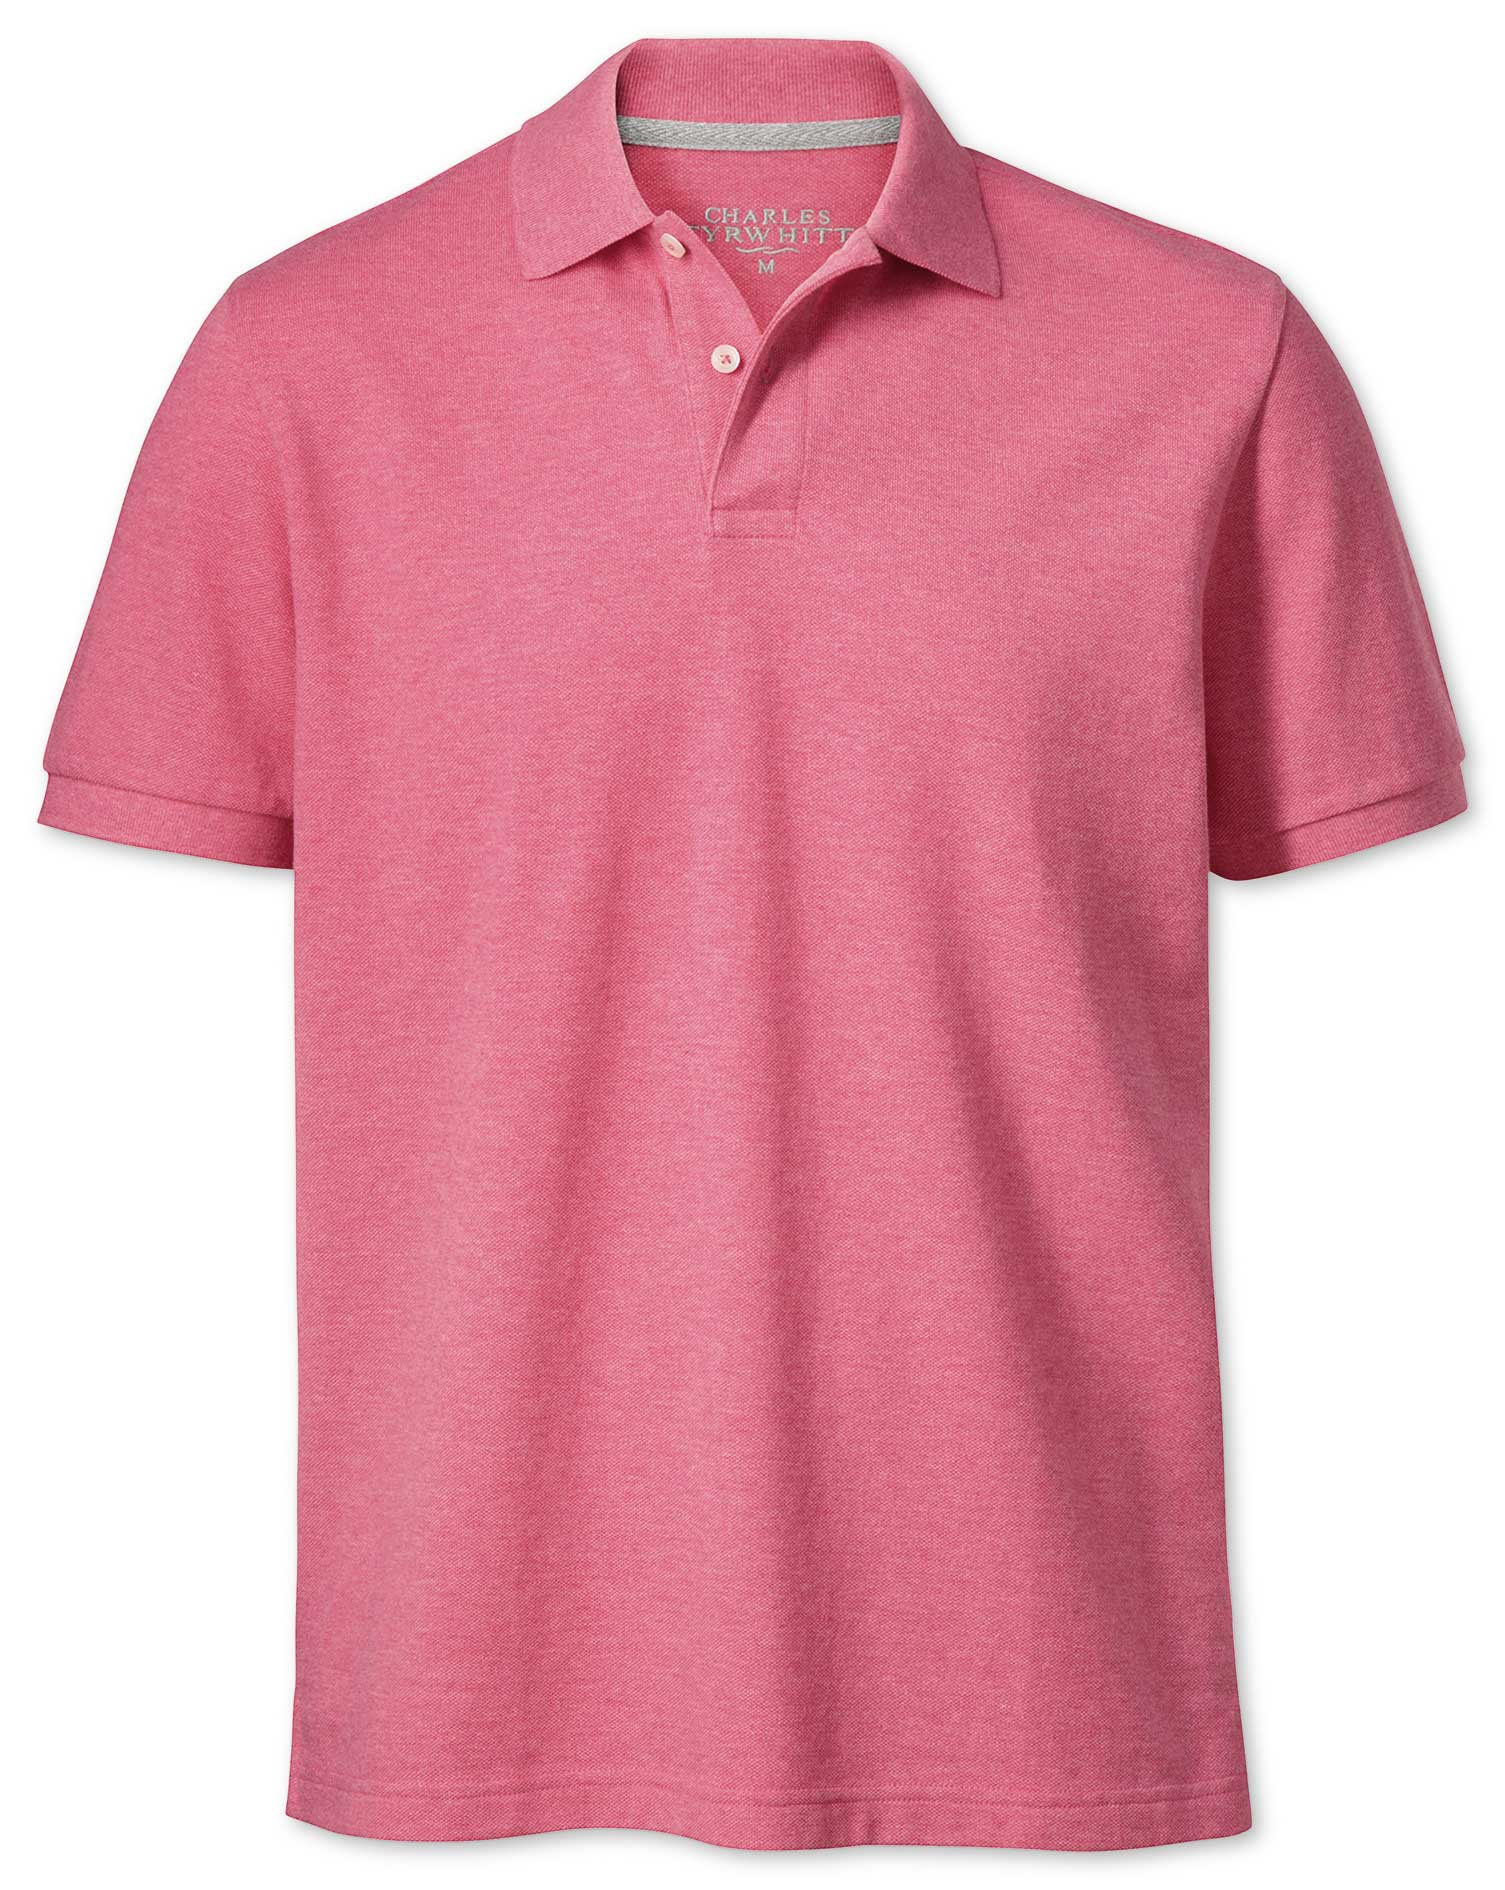 Dark Pink Pique Cotton Polo Size XS by Charles Tyrwhitt